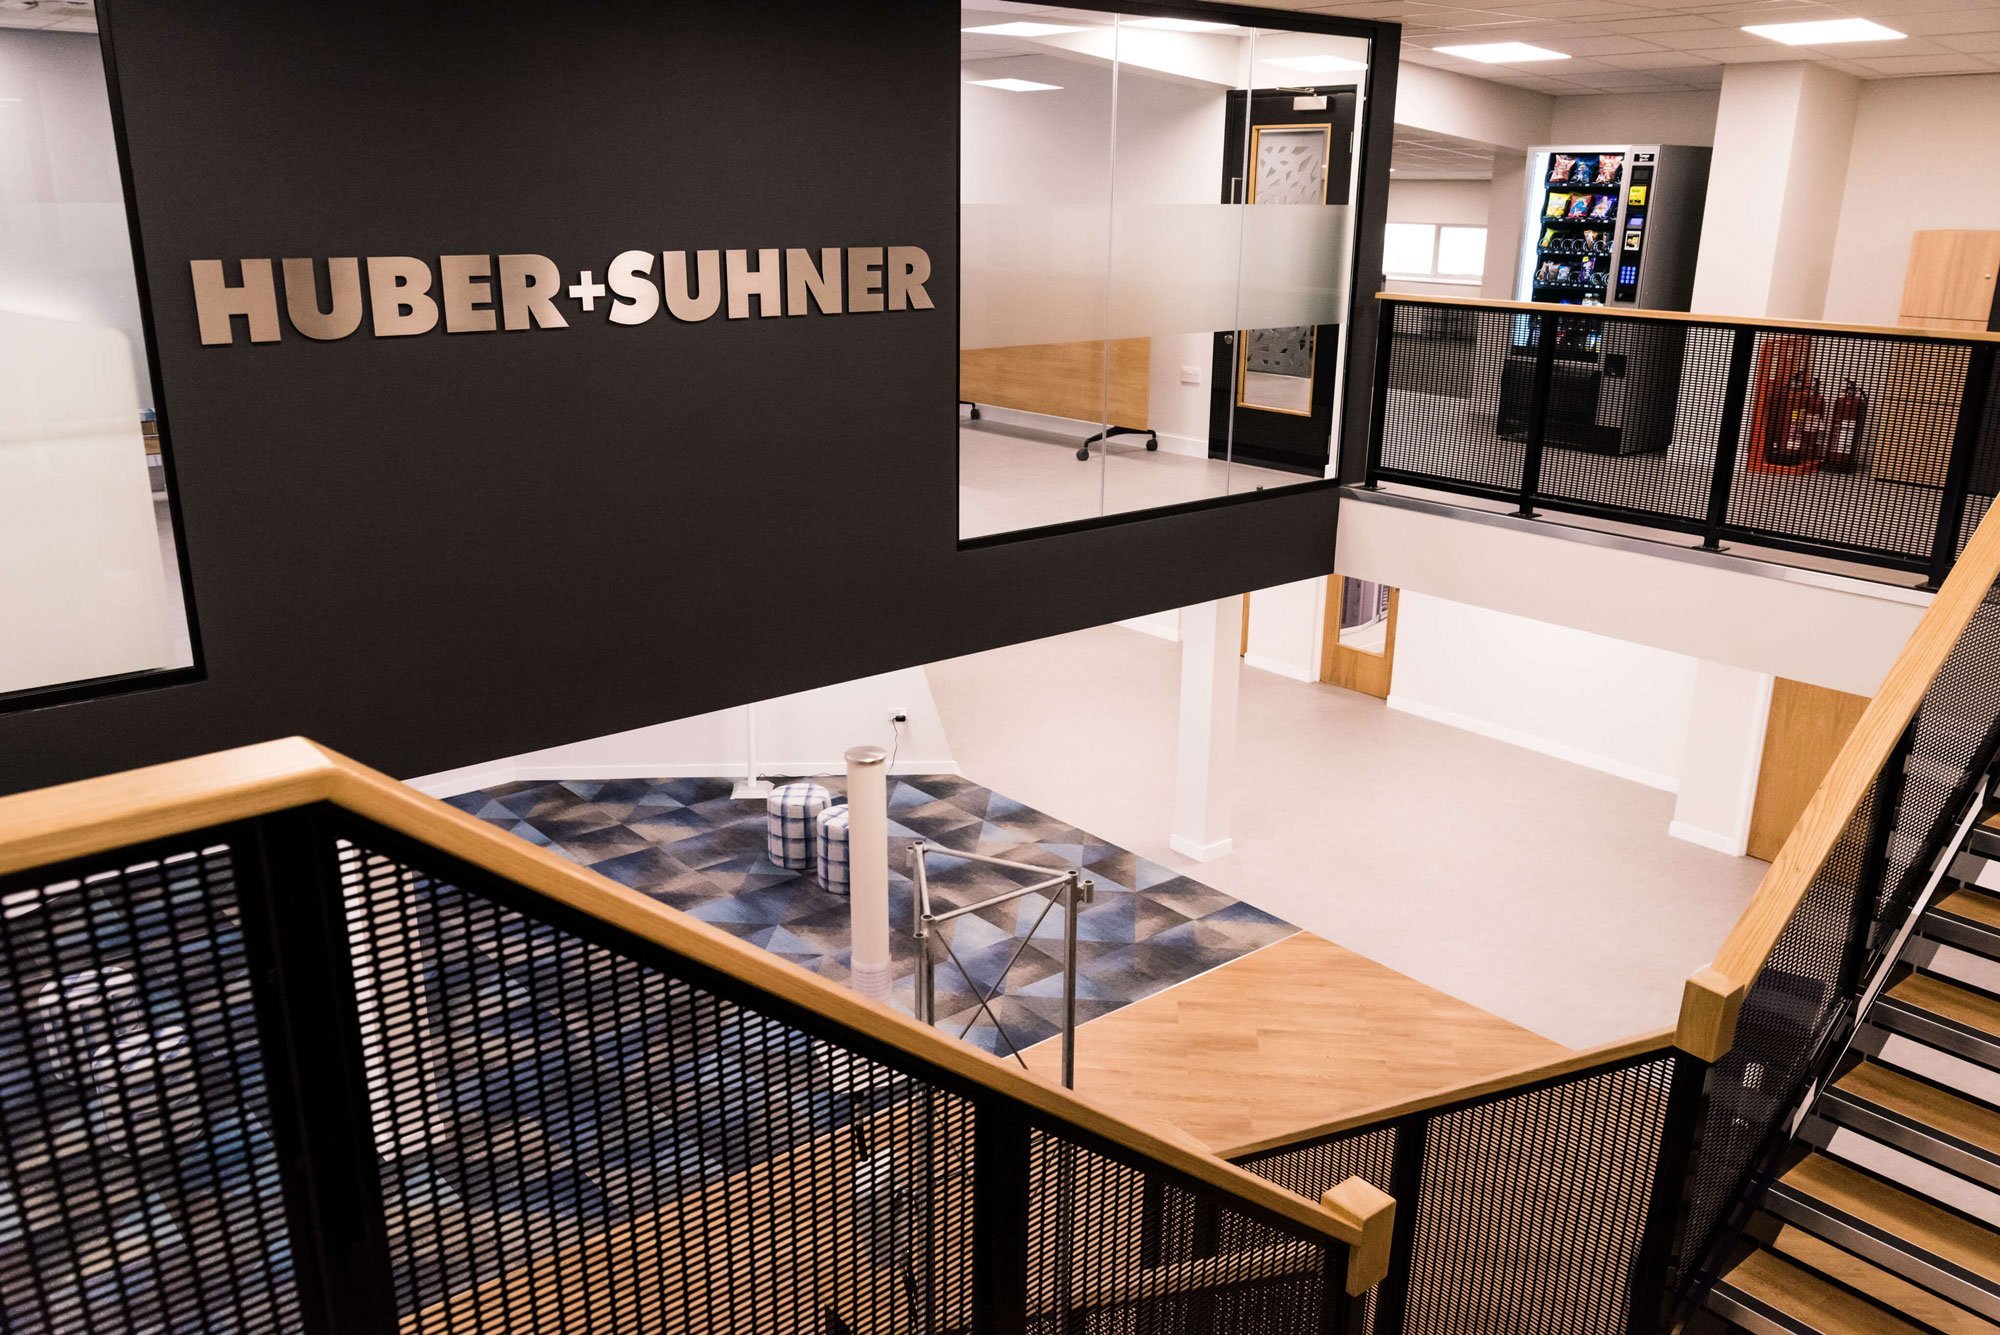 Huber + Suhner's Office Transformation